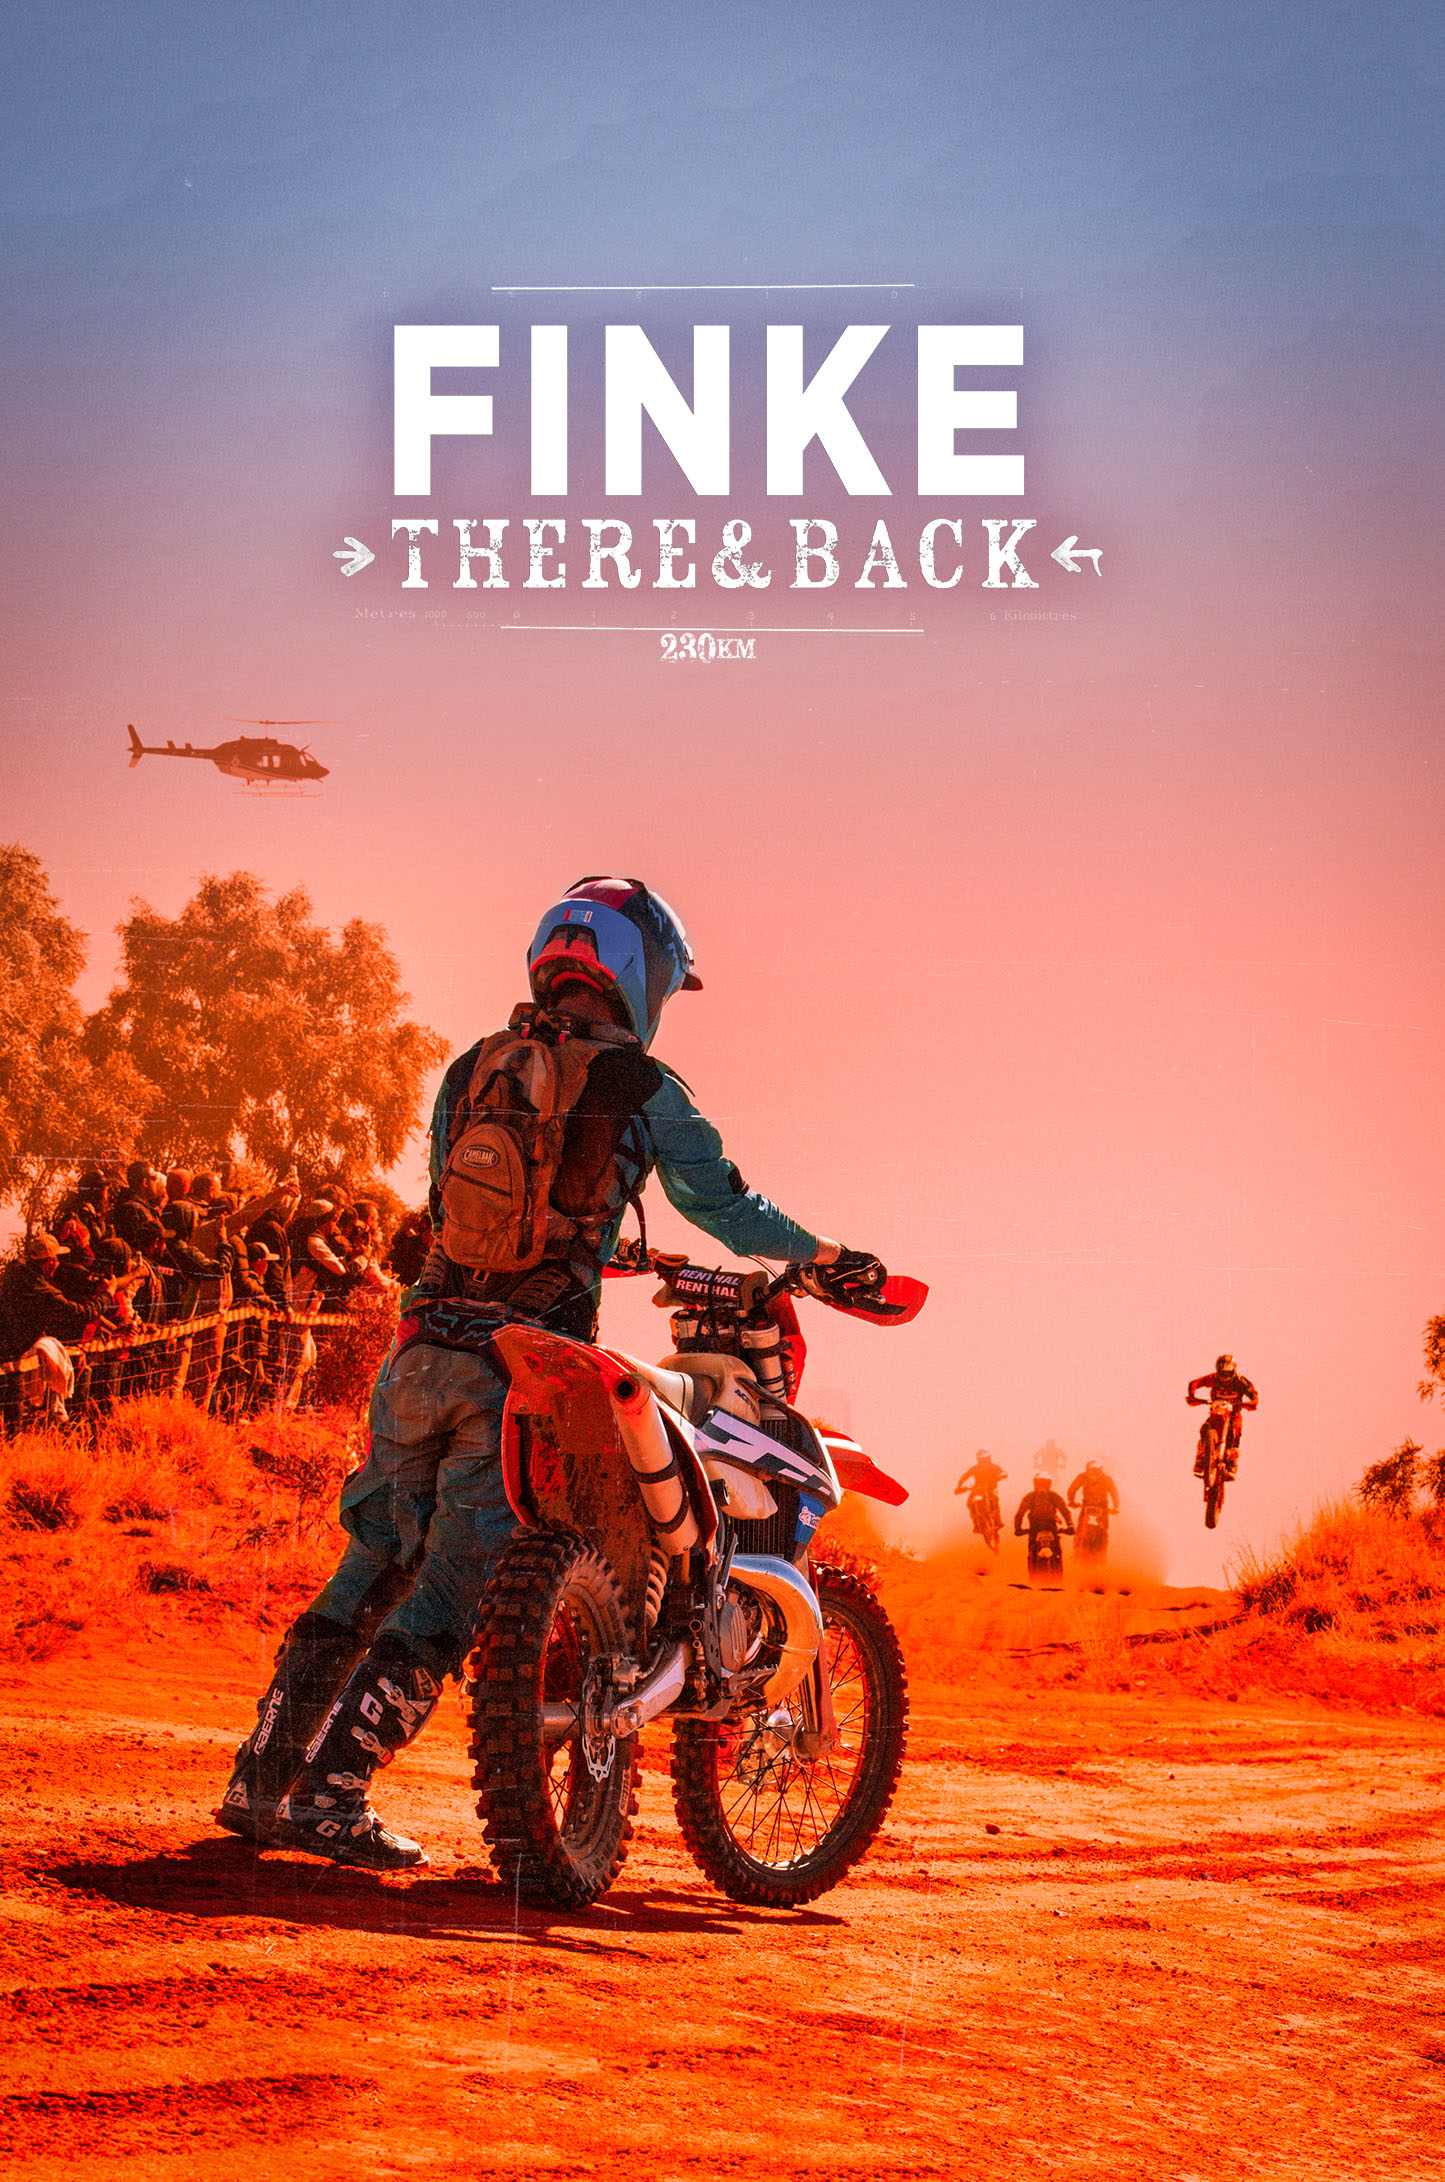 Finke: There and Back (2018)